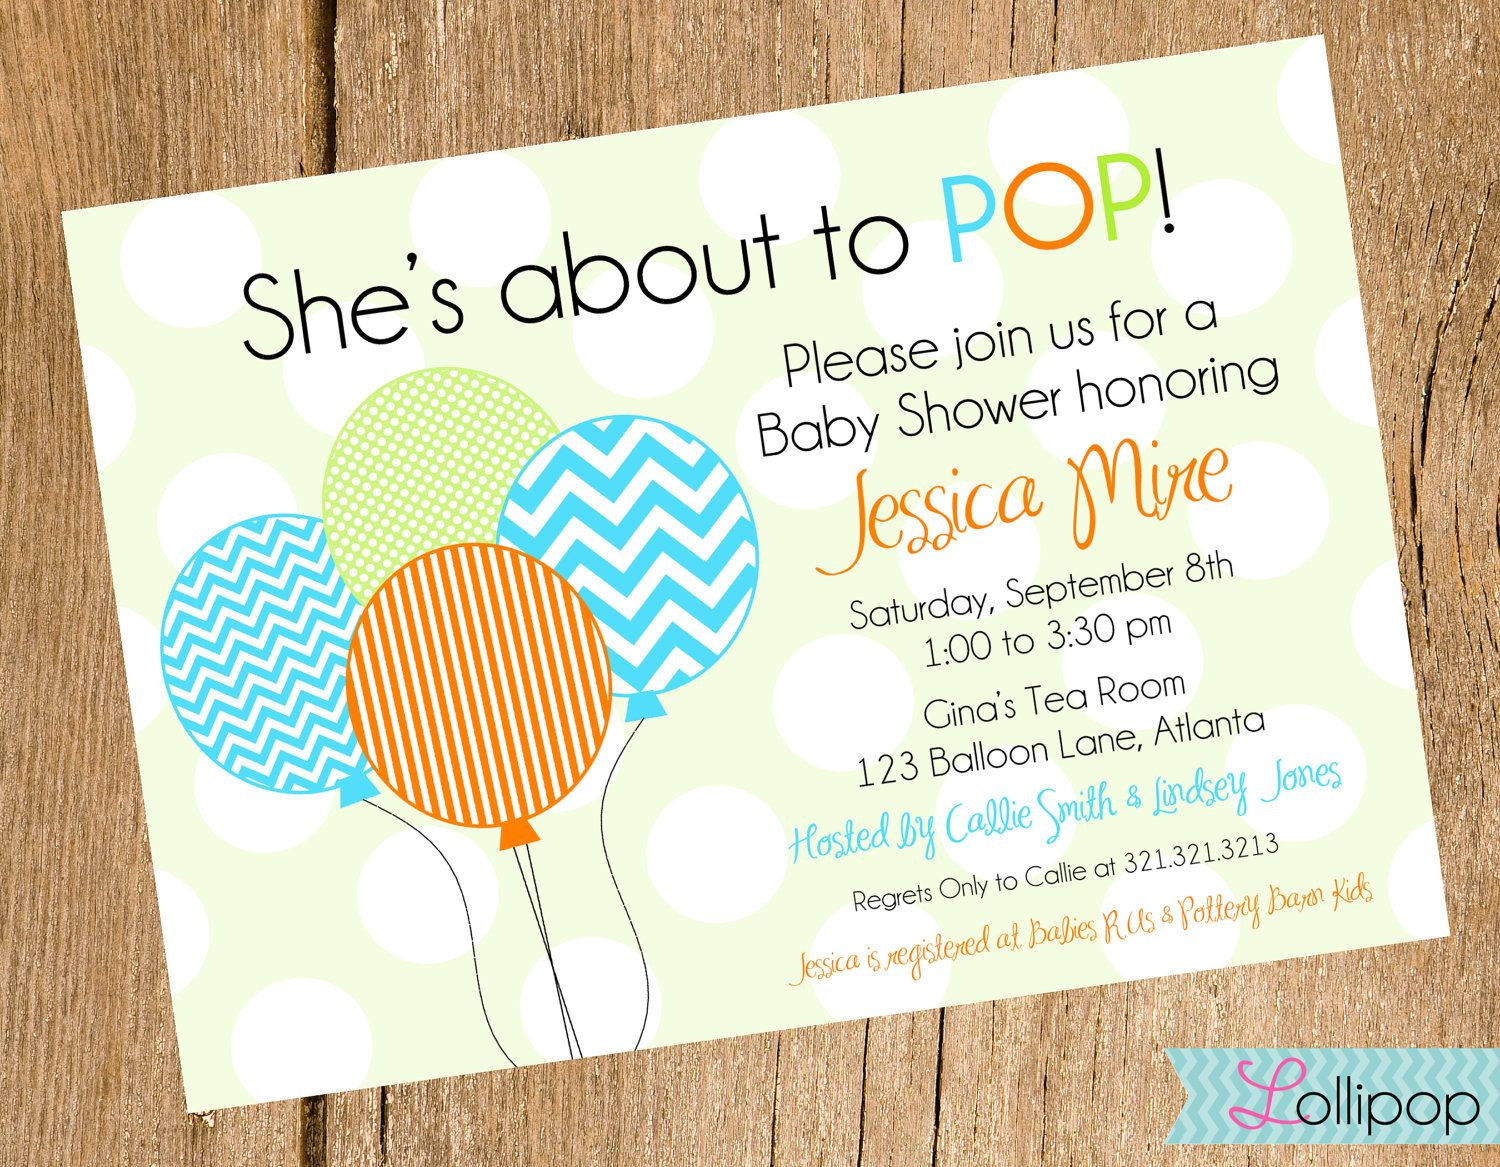 Shes About to POP Baby Shower Printable Invitation, Personalized ...